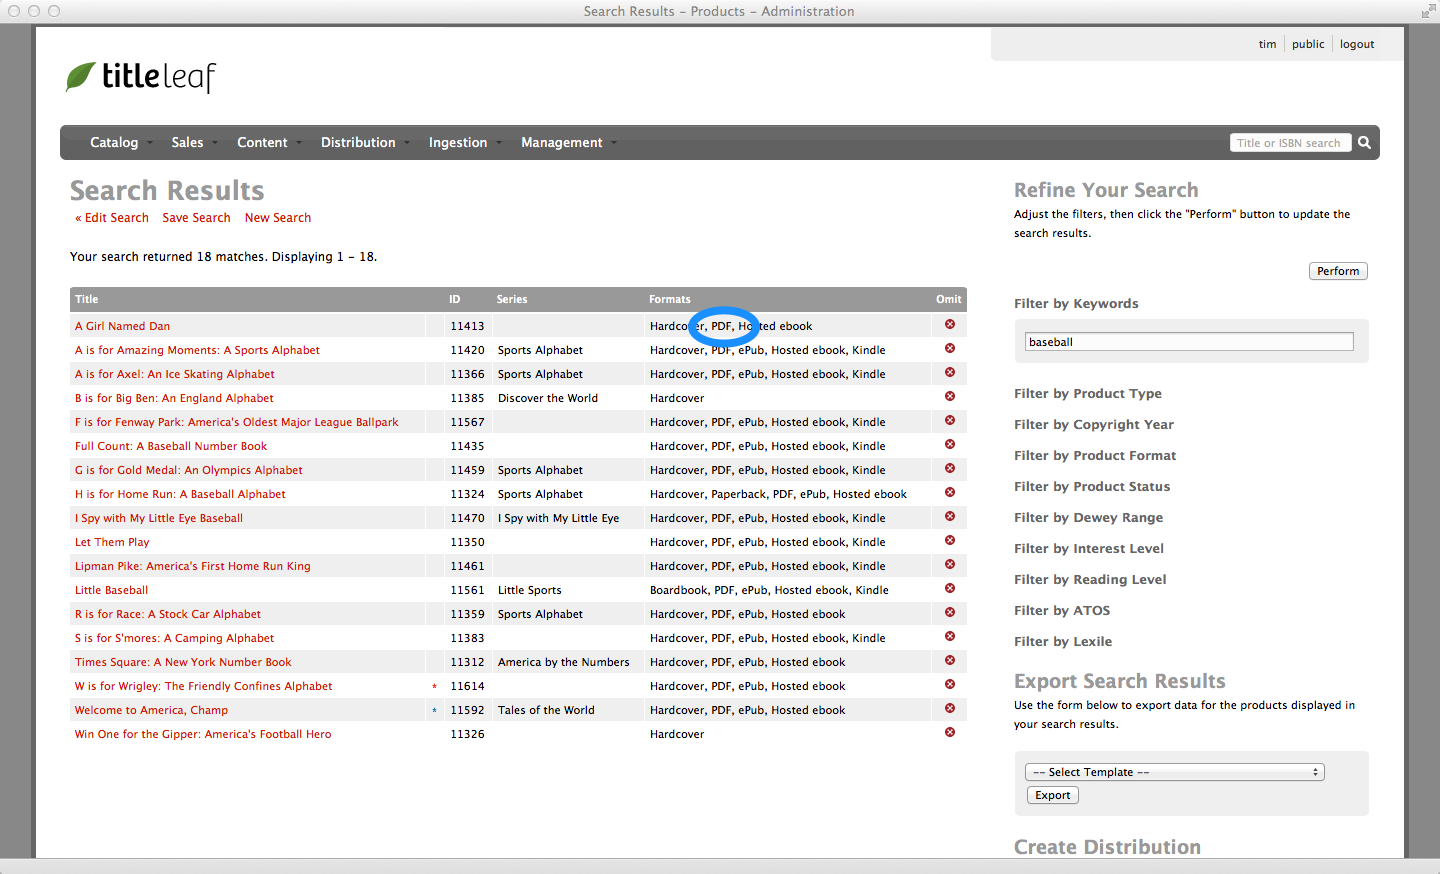 Admin search results, Highlight PDF in formats column